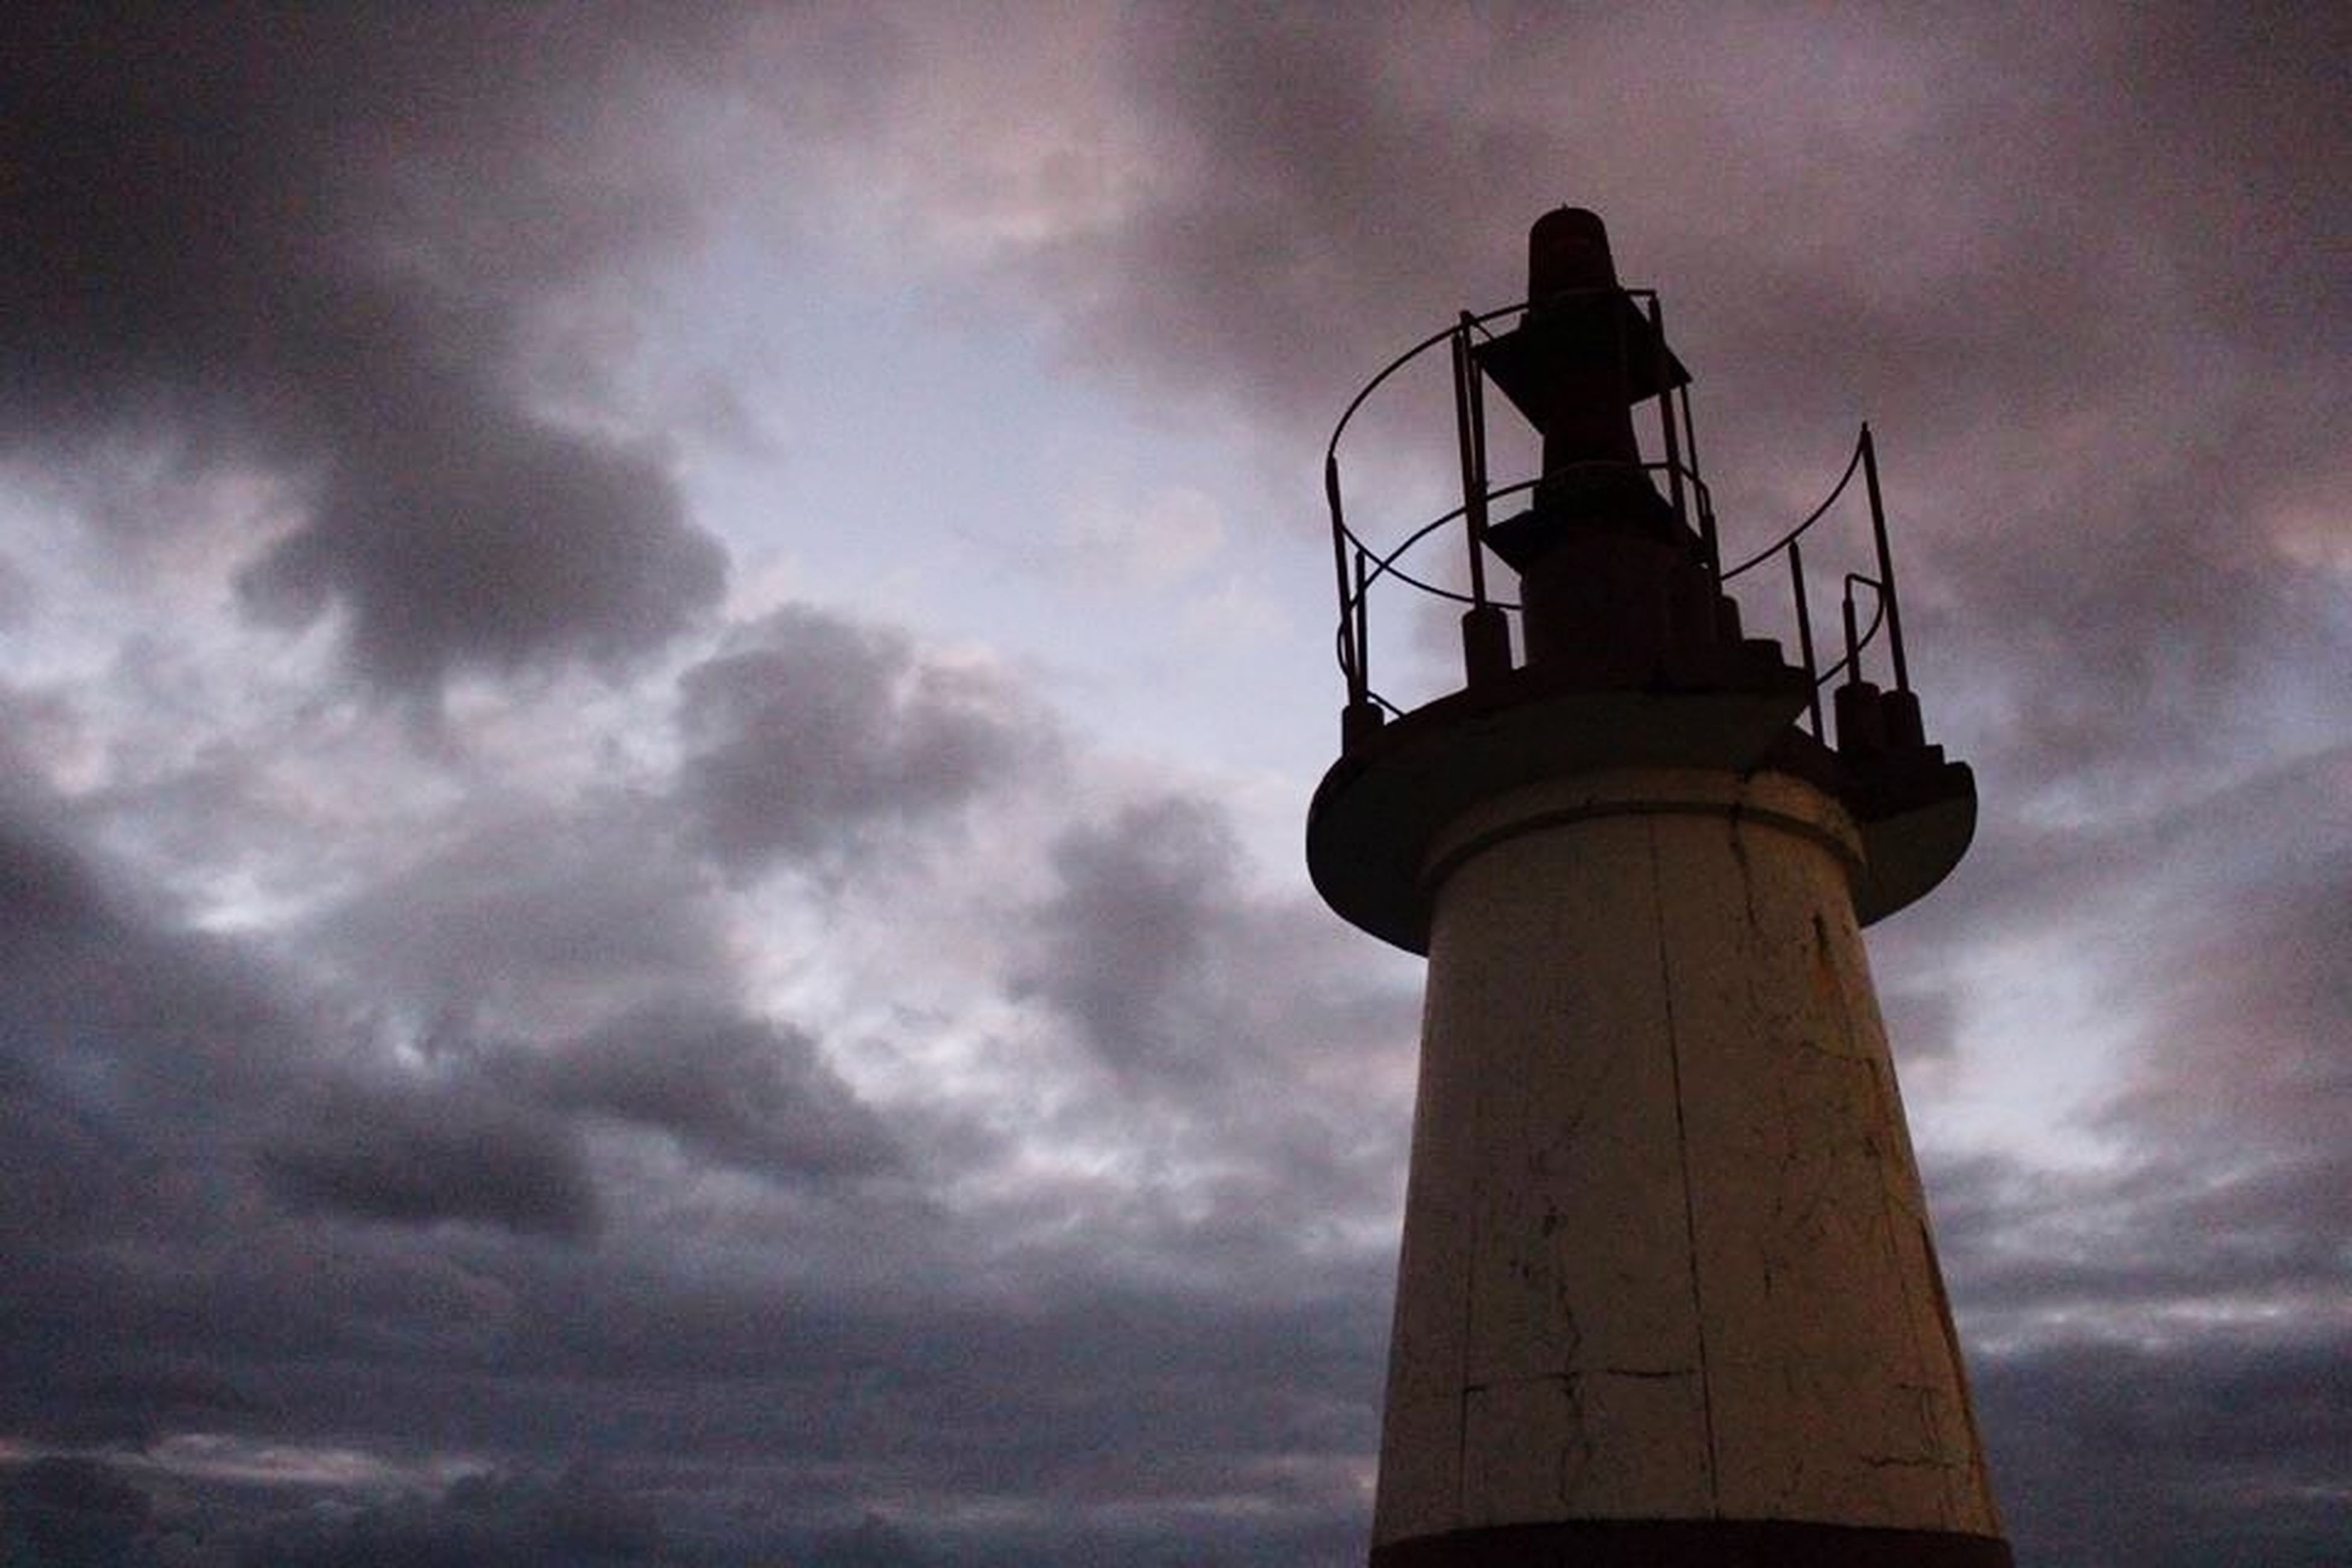 sky, low angle view, cloud - sky, architecture, built structure, tower, cloudy, lighthouse, communications tower, tall - high, building exterior, guidance, communication, cloud, sunset, industry, weather, dusk, direction, overcast